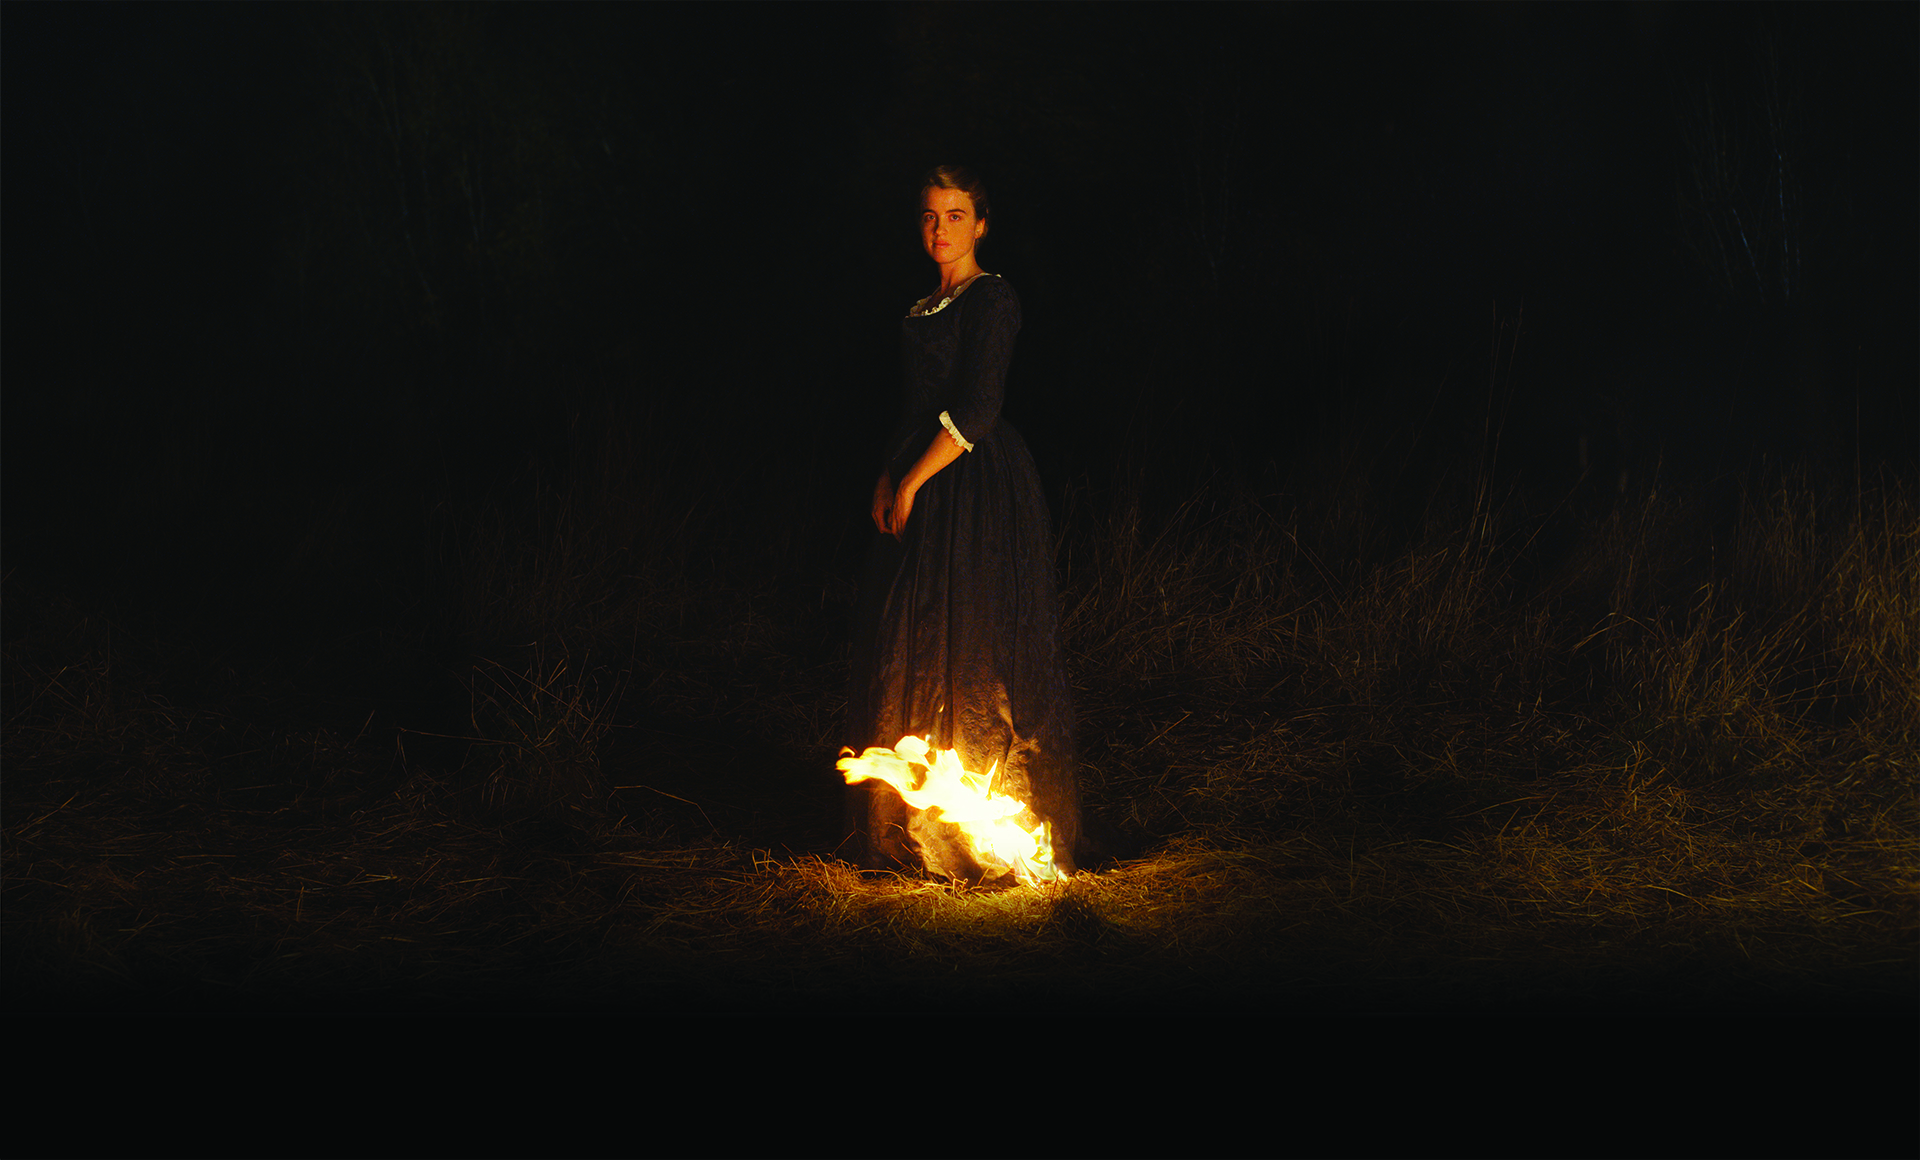 Portrait of a lady on fire, fire scene